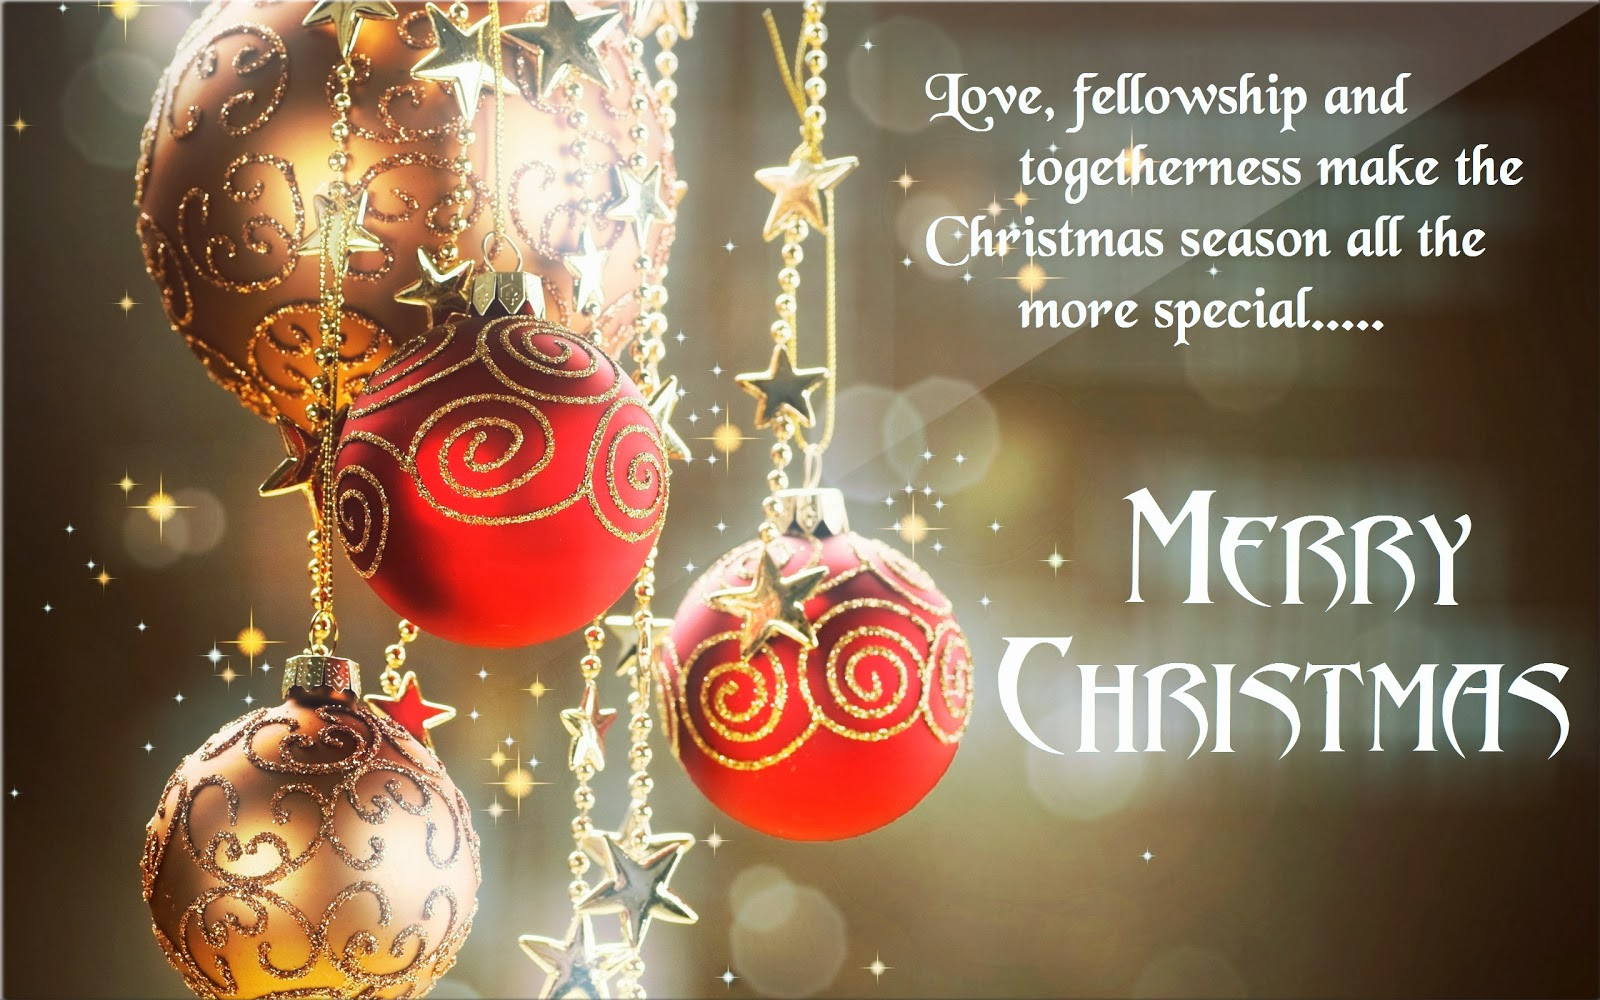 70 Happy Merry Christmas Facebook And Whatsapp Status And Messages